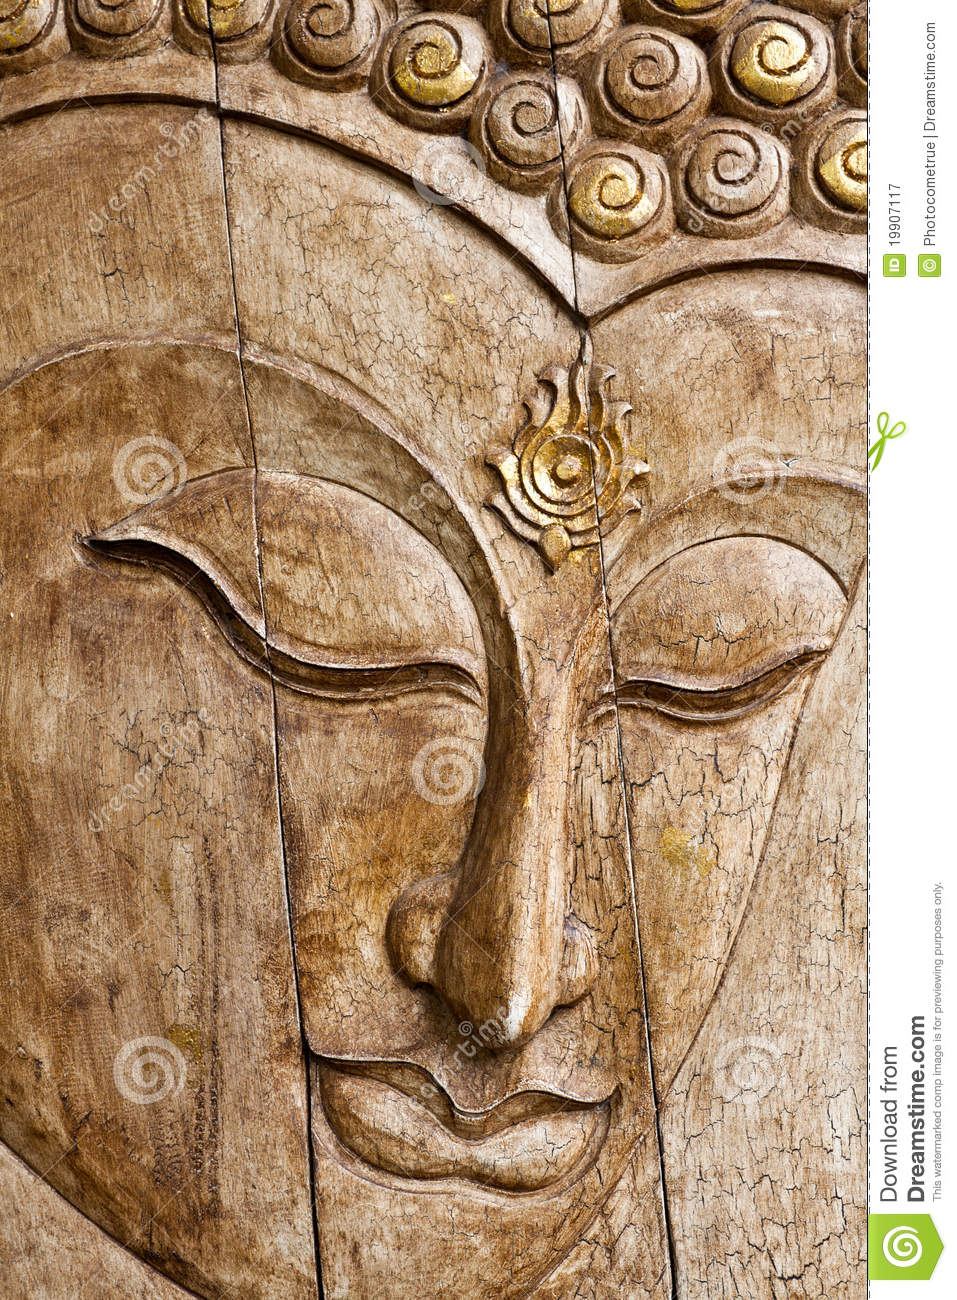 Buddha Image In Thai Style Wood Carving Stock Image